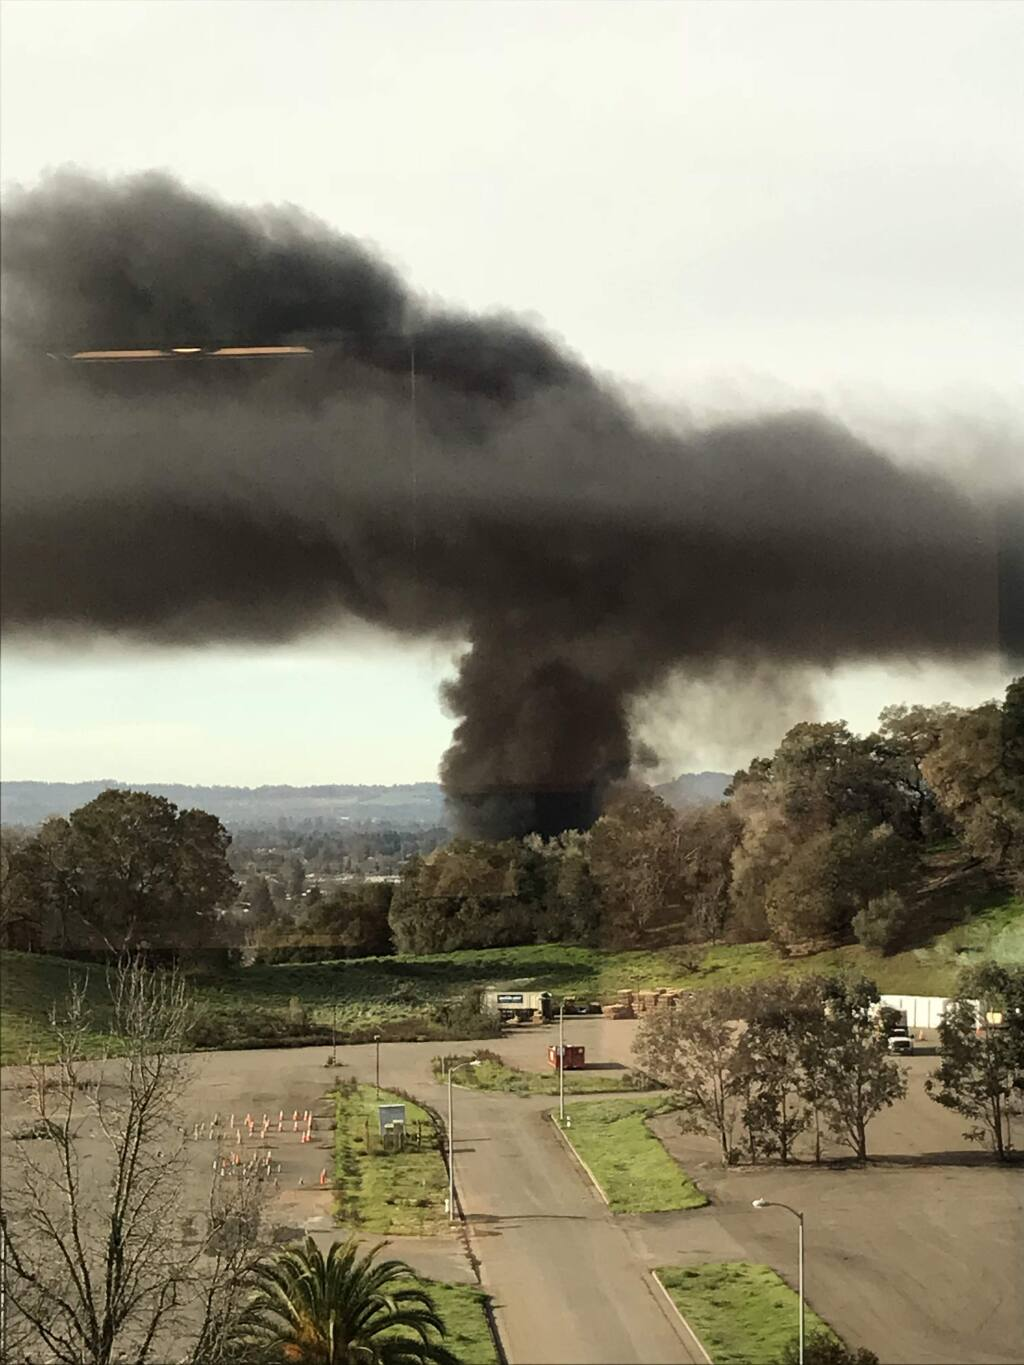 A large truck driving on Fountaingrove Parkway slammed into multiple vehicles, catching fire and sending a huge plume of dark smoke over the northern end of Santa Rosa on Monday, Feb. 5, 2018. (COURTESY OF TINA MONTGOMERY)